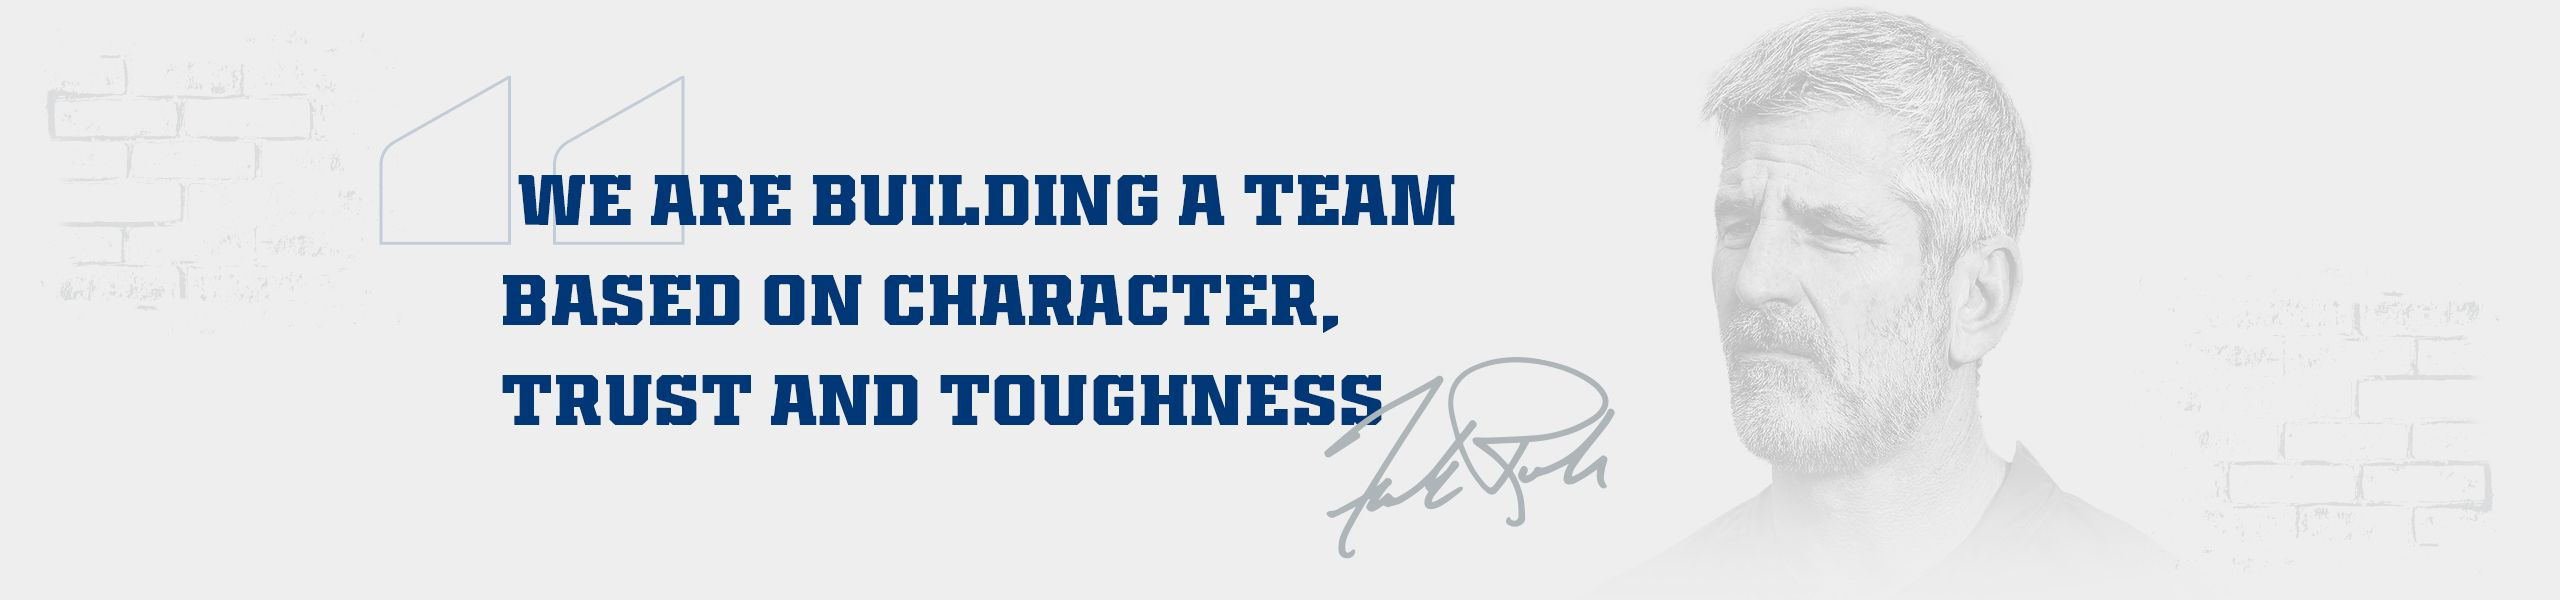 We are building a team based on character, trust and toughness  Frank Reich